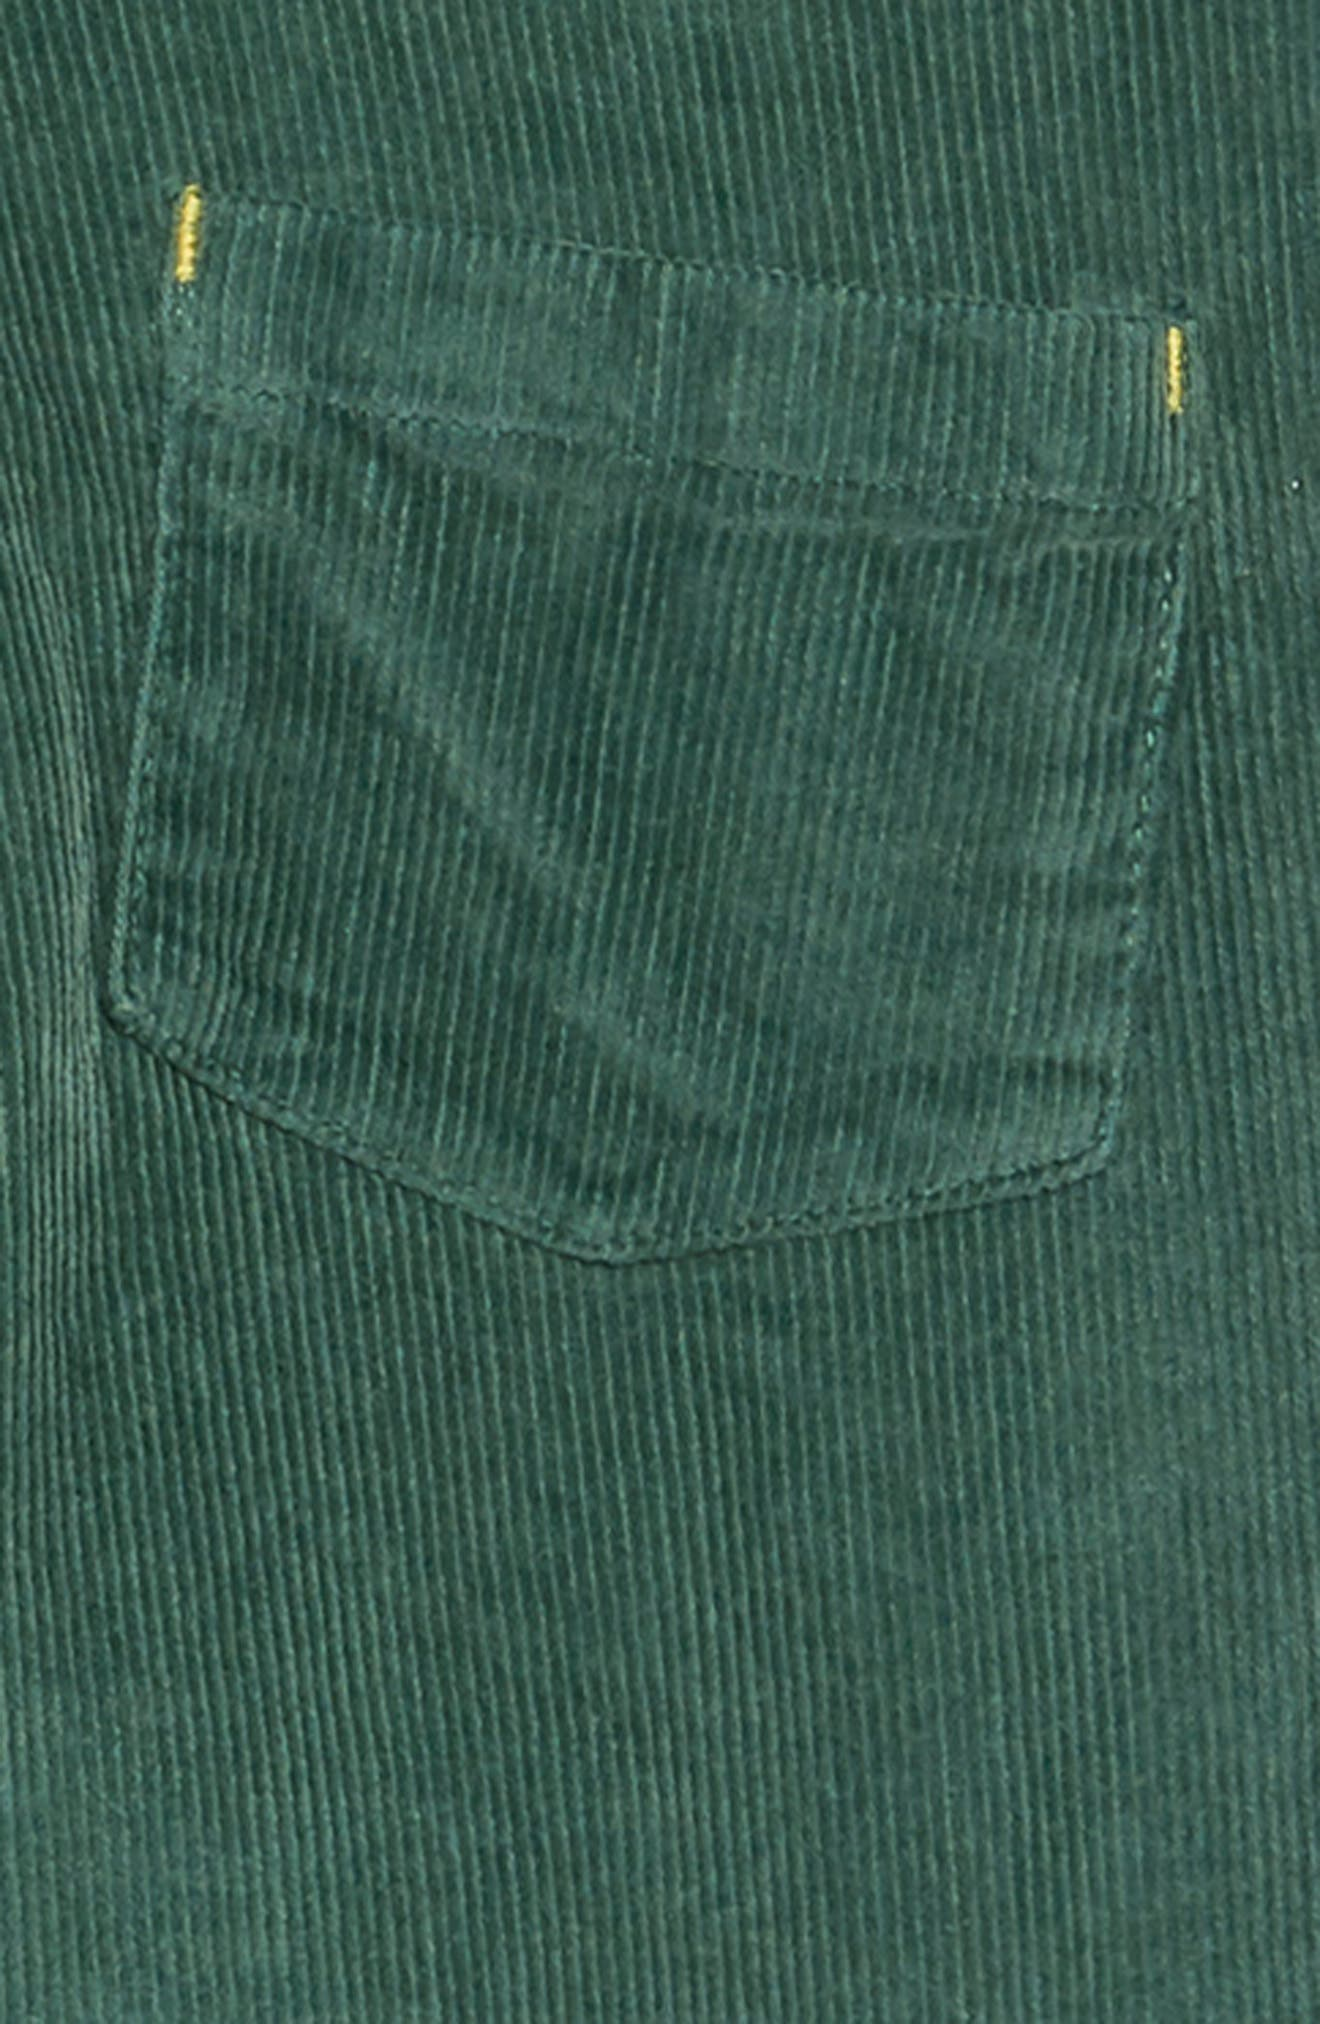 Embroidered Dungaree Overalls,                             Alternate thumbnail 3, color,                             315